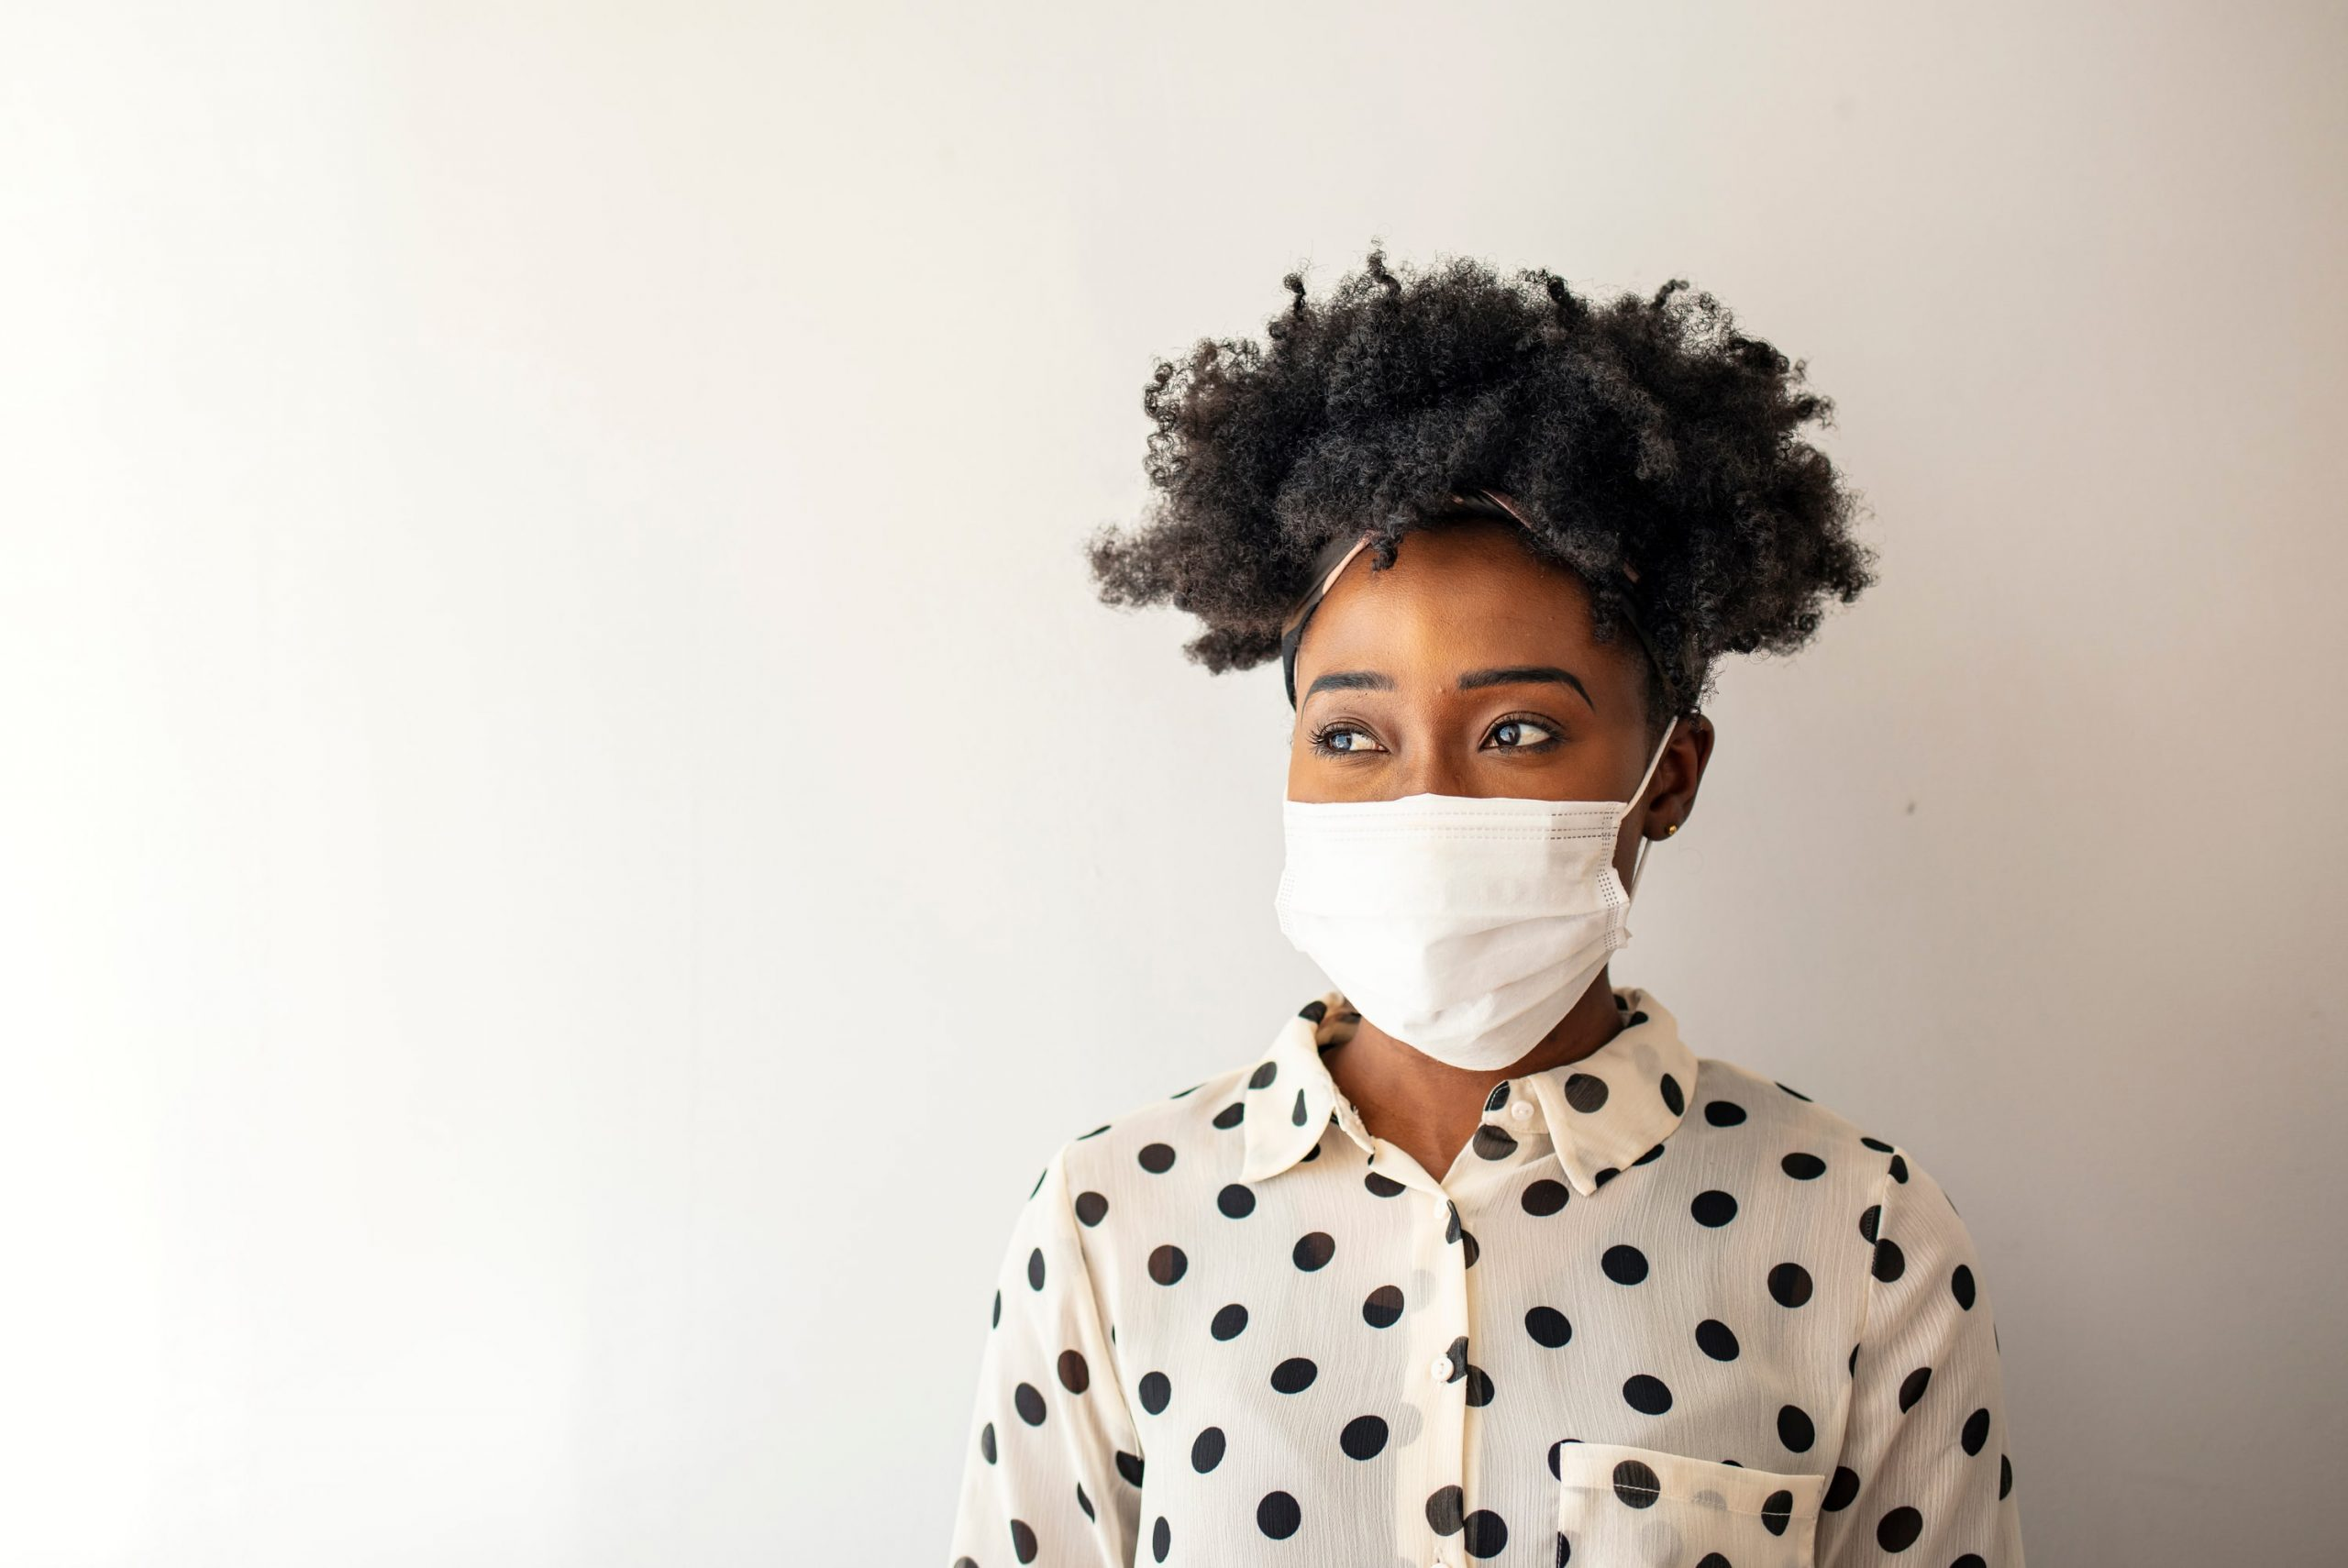 Where to Buy Reusable Cloth Face Masks Online for COVID-19